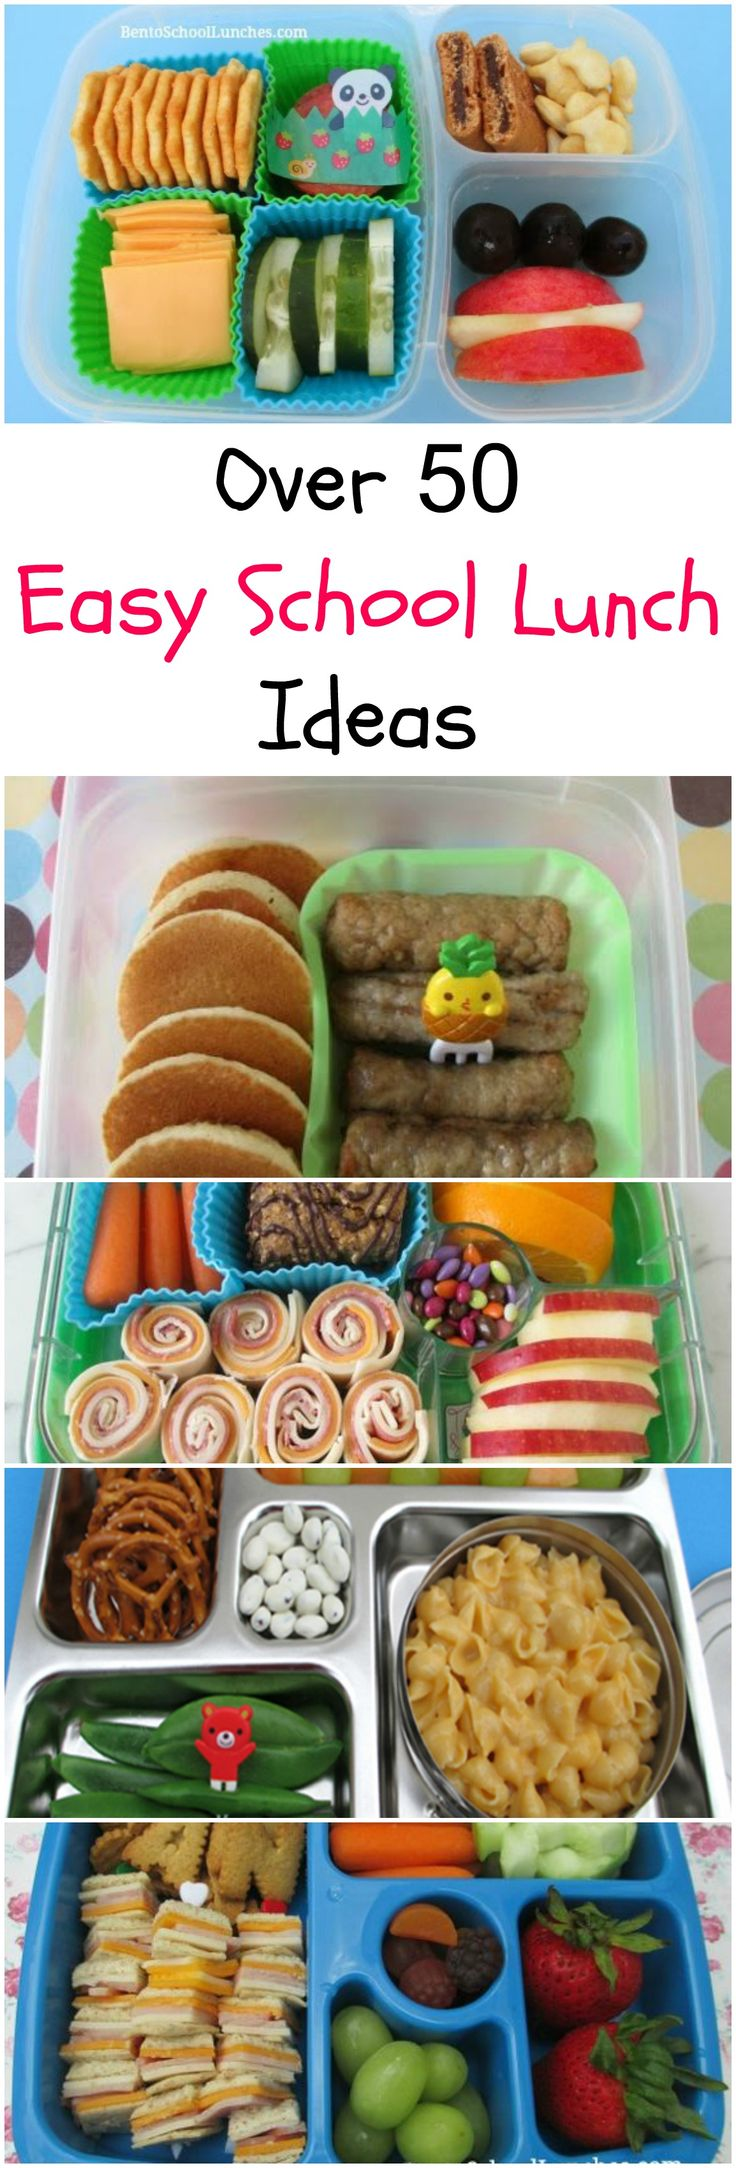 Easy and Fun School Lunch Ideas from Pinwheels, Roll-Ups, DIY Lunchables, Leftovers, Kebabs.